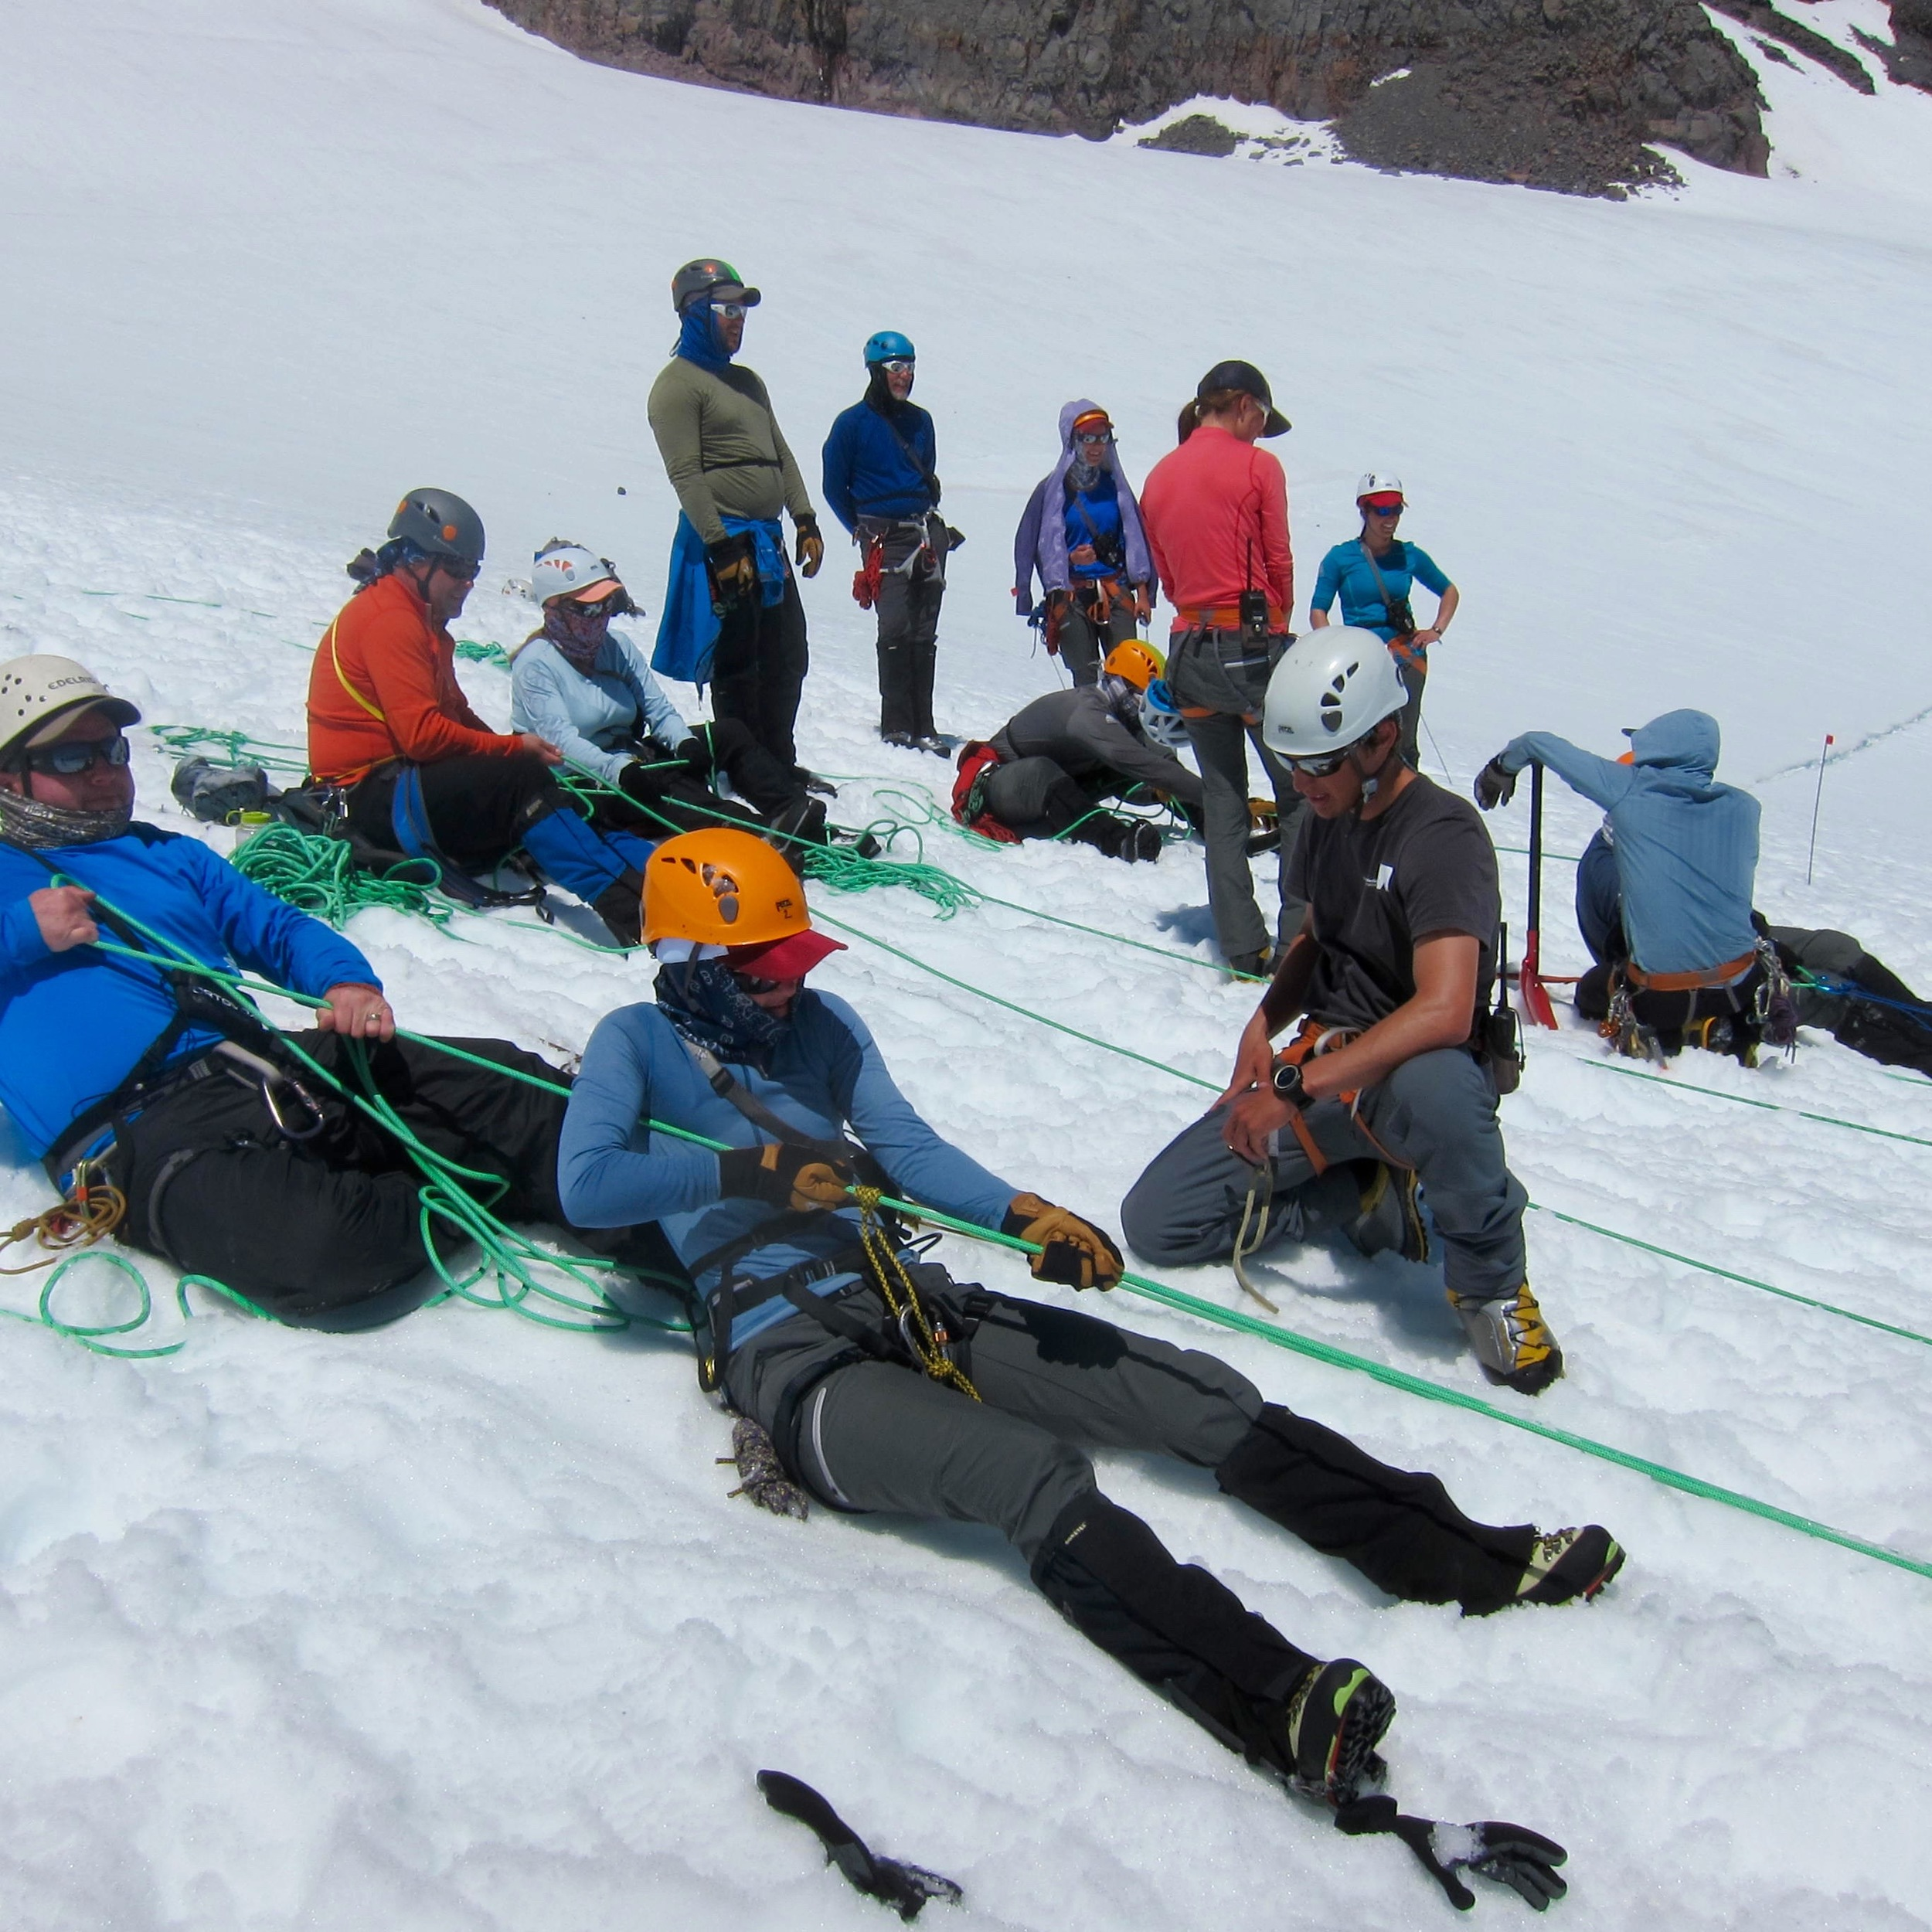 Crevasse rescue practice. Don't forget your prusiks!